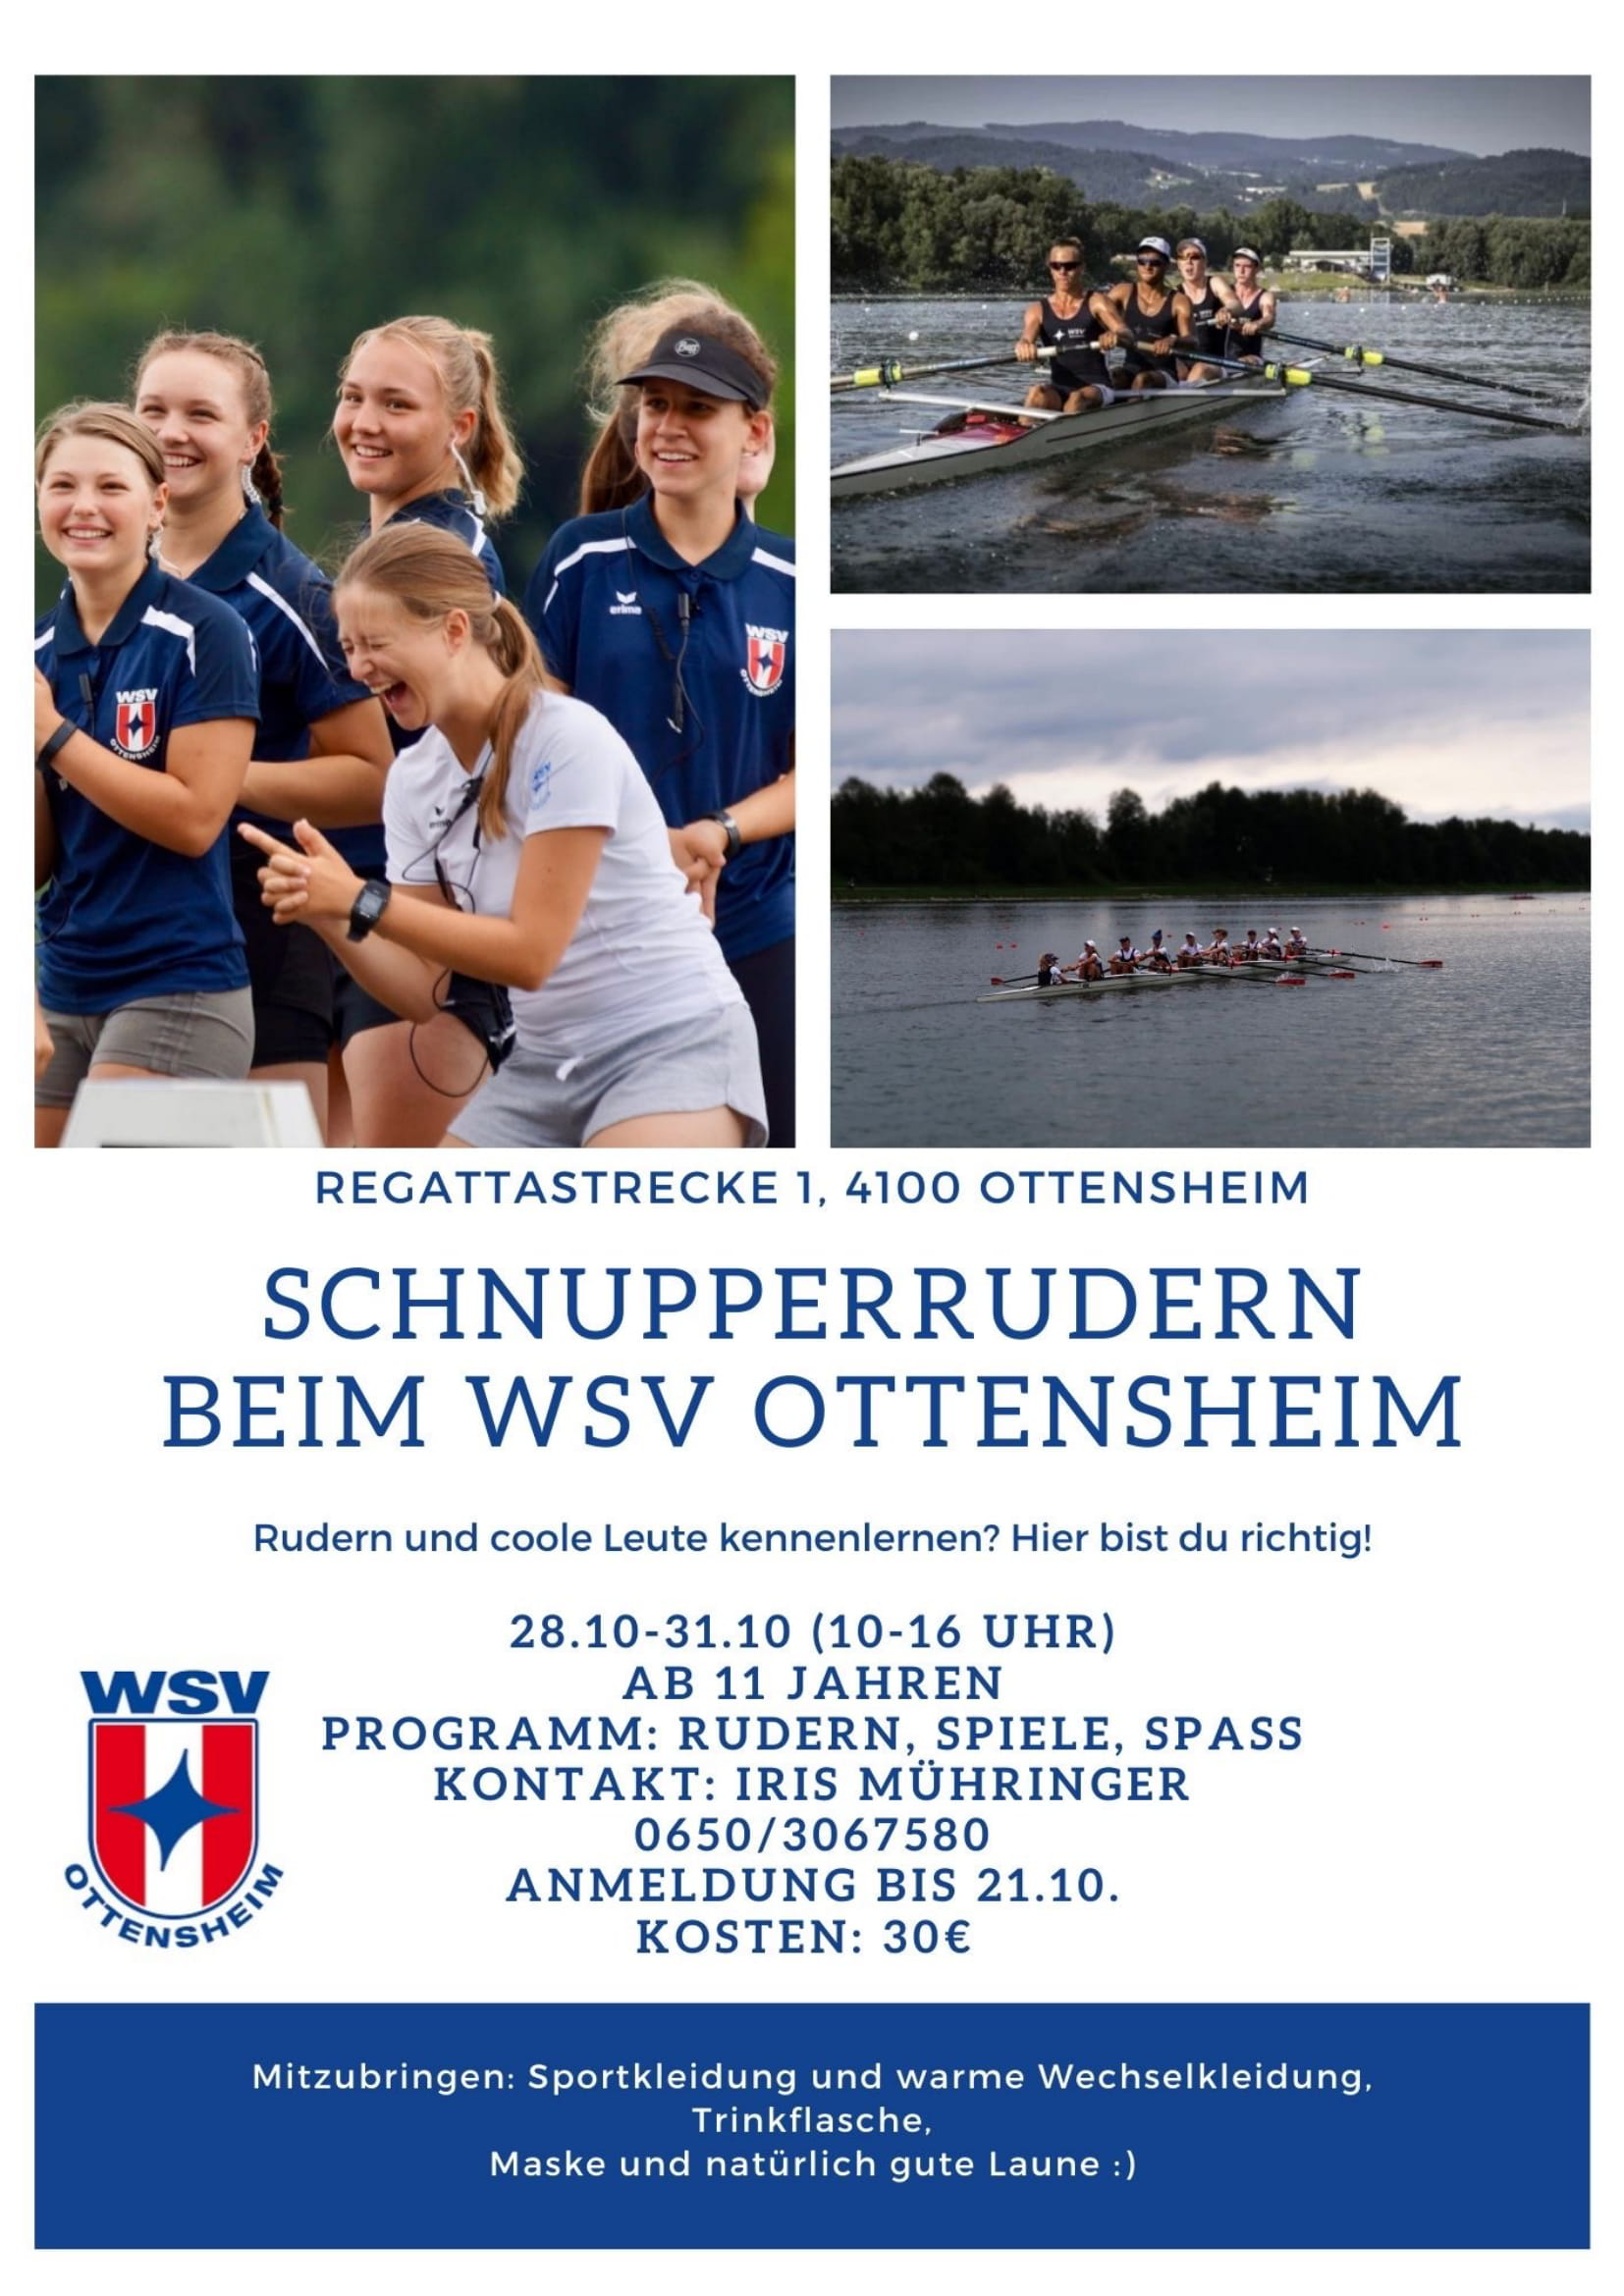 https://wsv-ottensheim.at/assets/News-Rudern/2020/Flyer-Schnupperrudern-1.jpg?vid=1